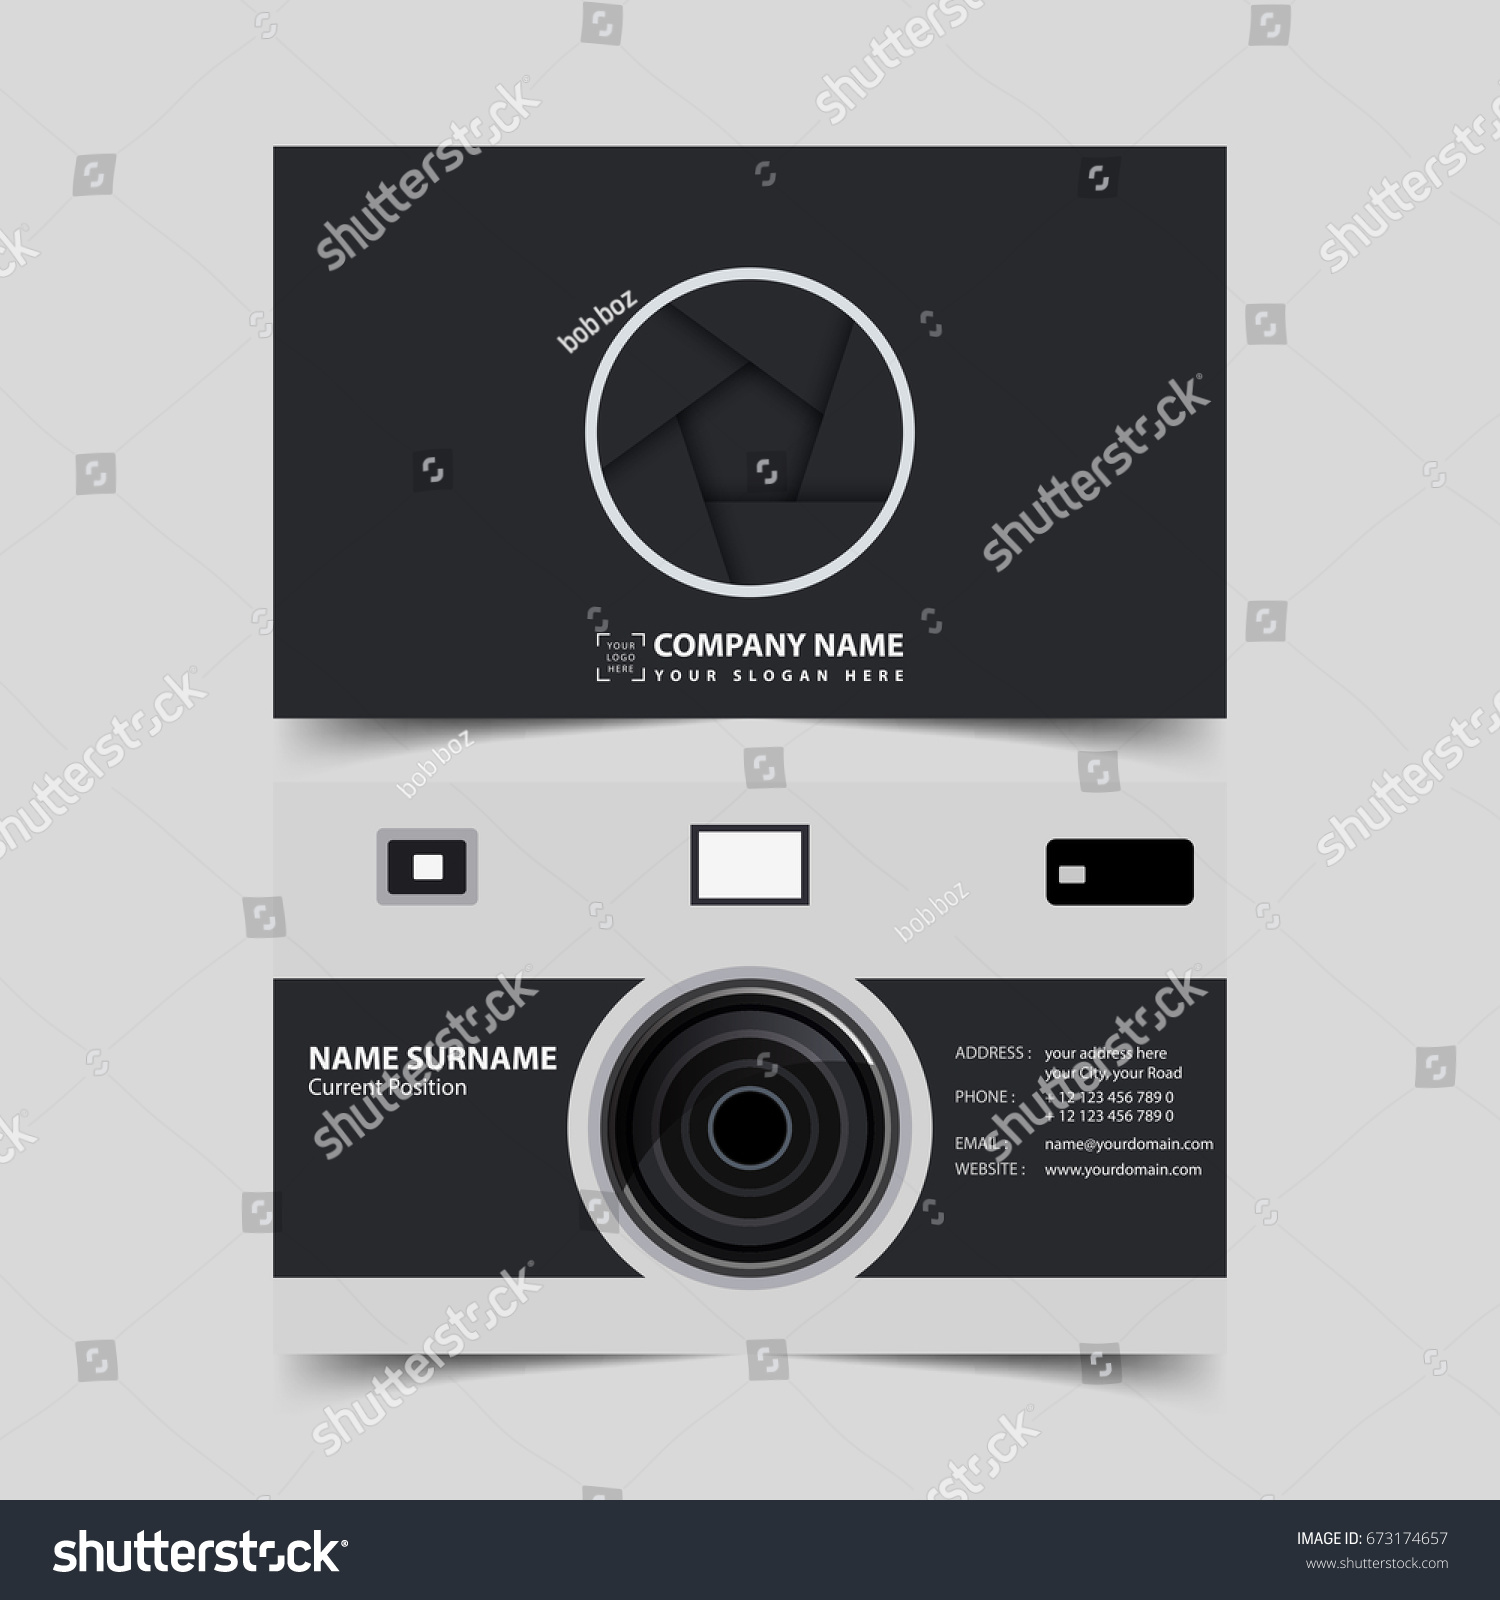 Photographer Business Card Design Template Stock Vector 673174657 ...